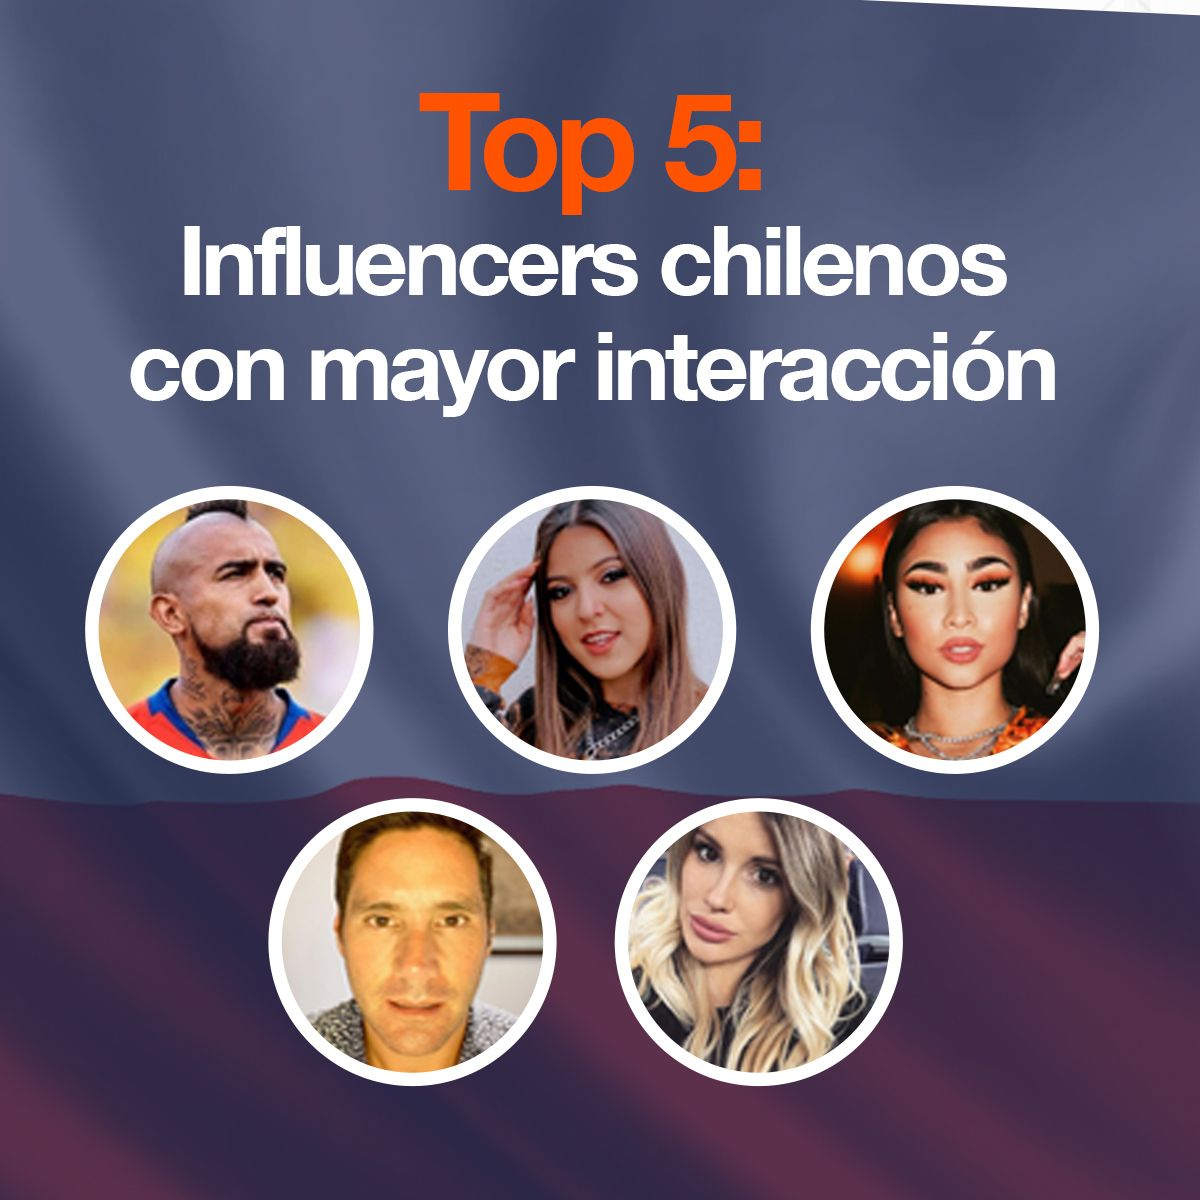 Top 5: Influencers chilenos con mayor interacción